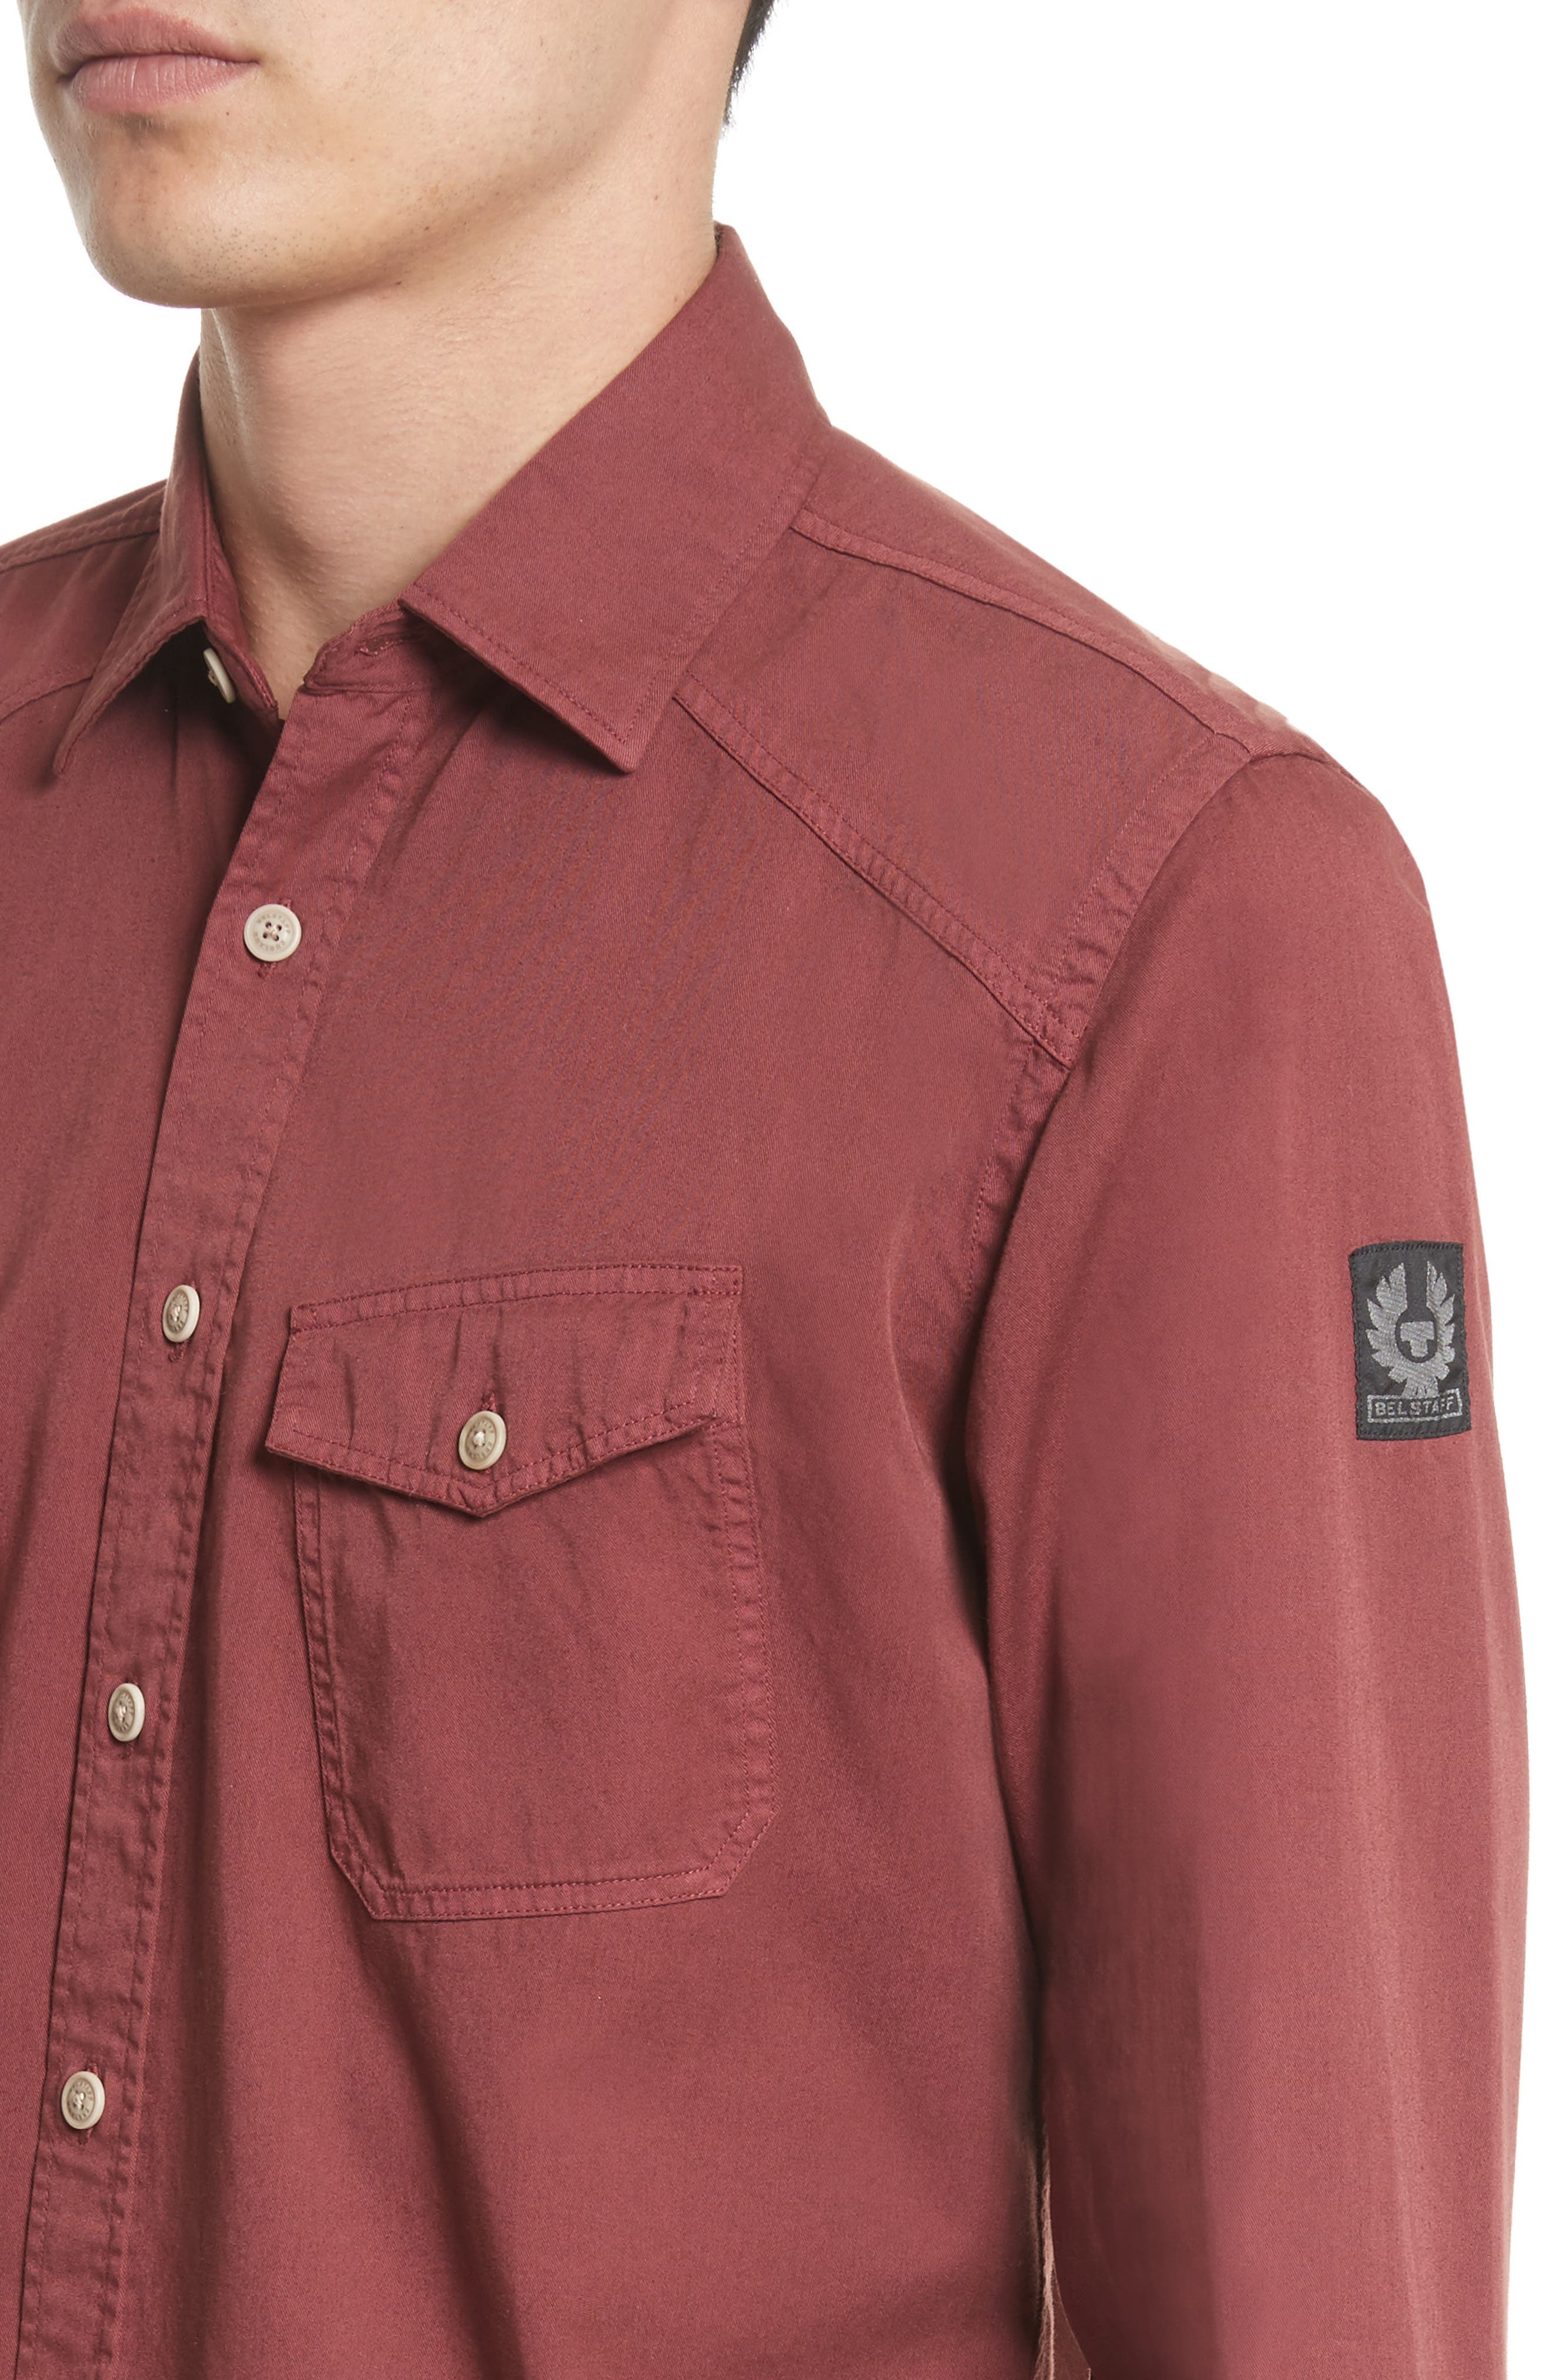 Steadway Extra Slim Fit Sport Shirt,                             Alternate thumbnail 24, color,